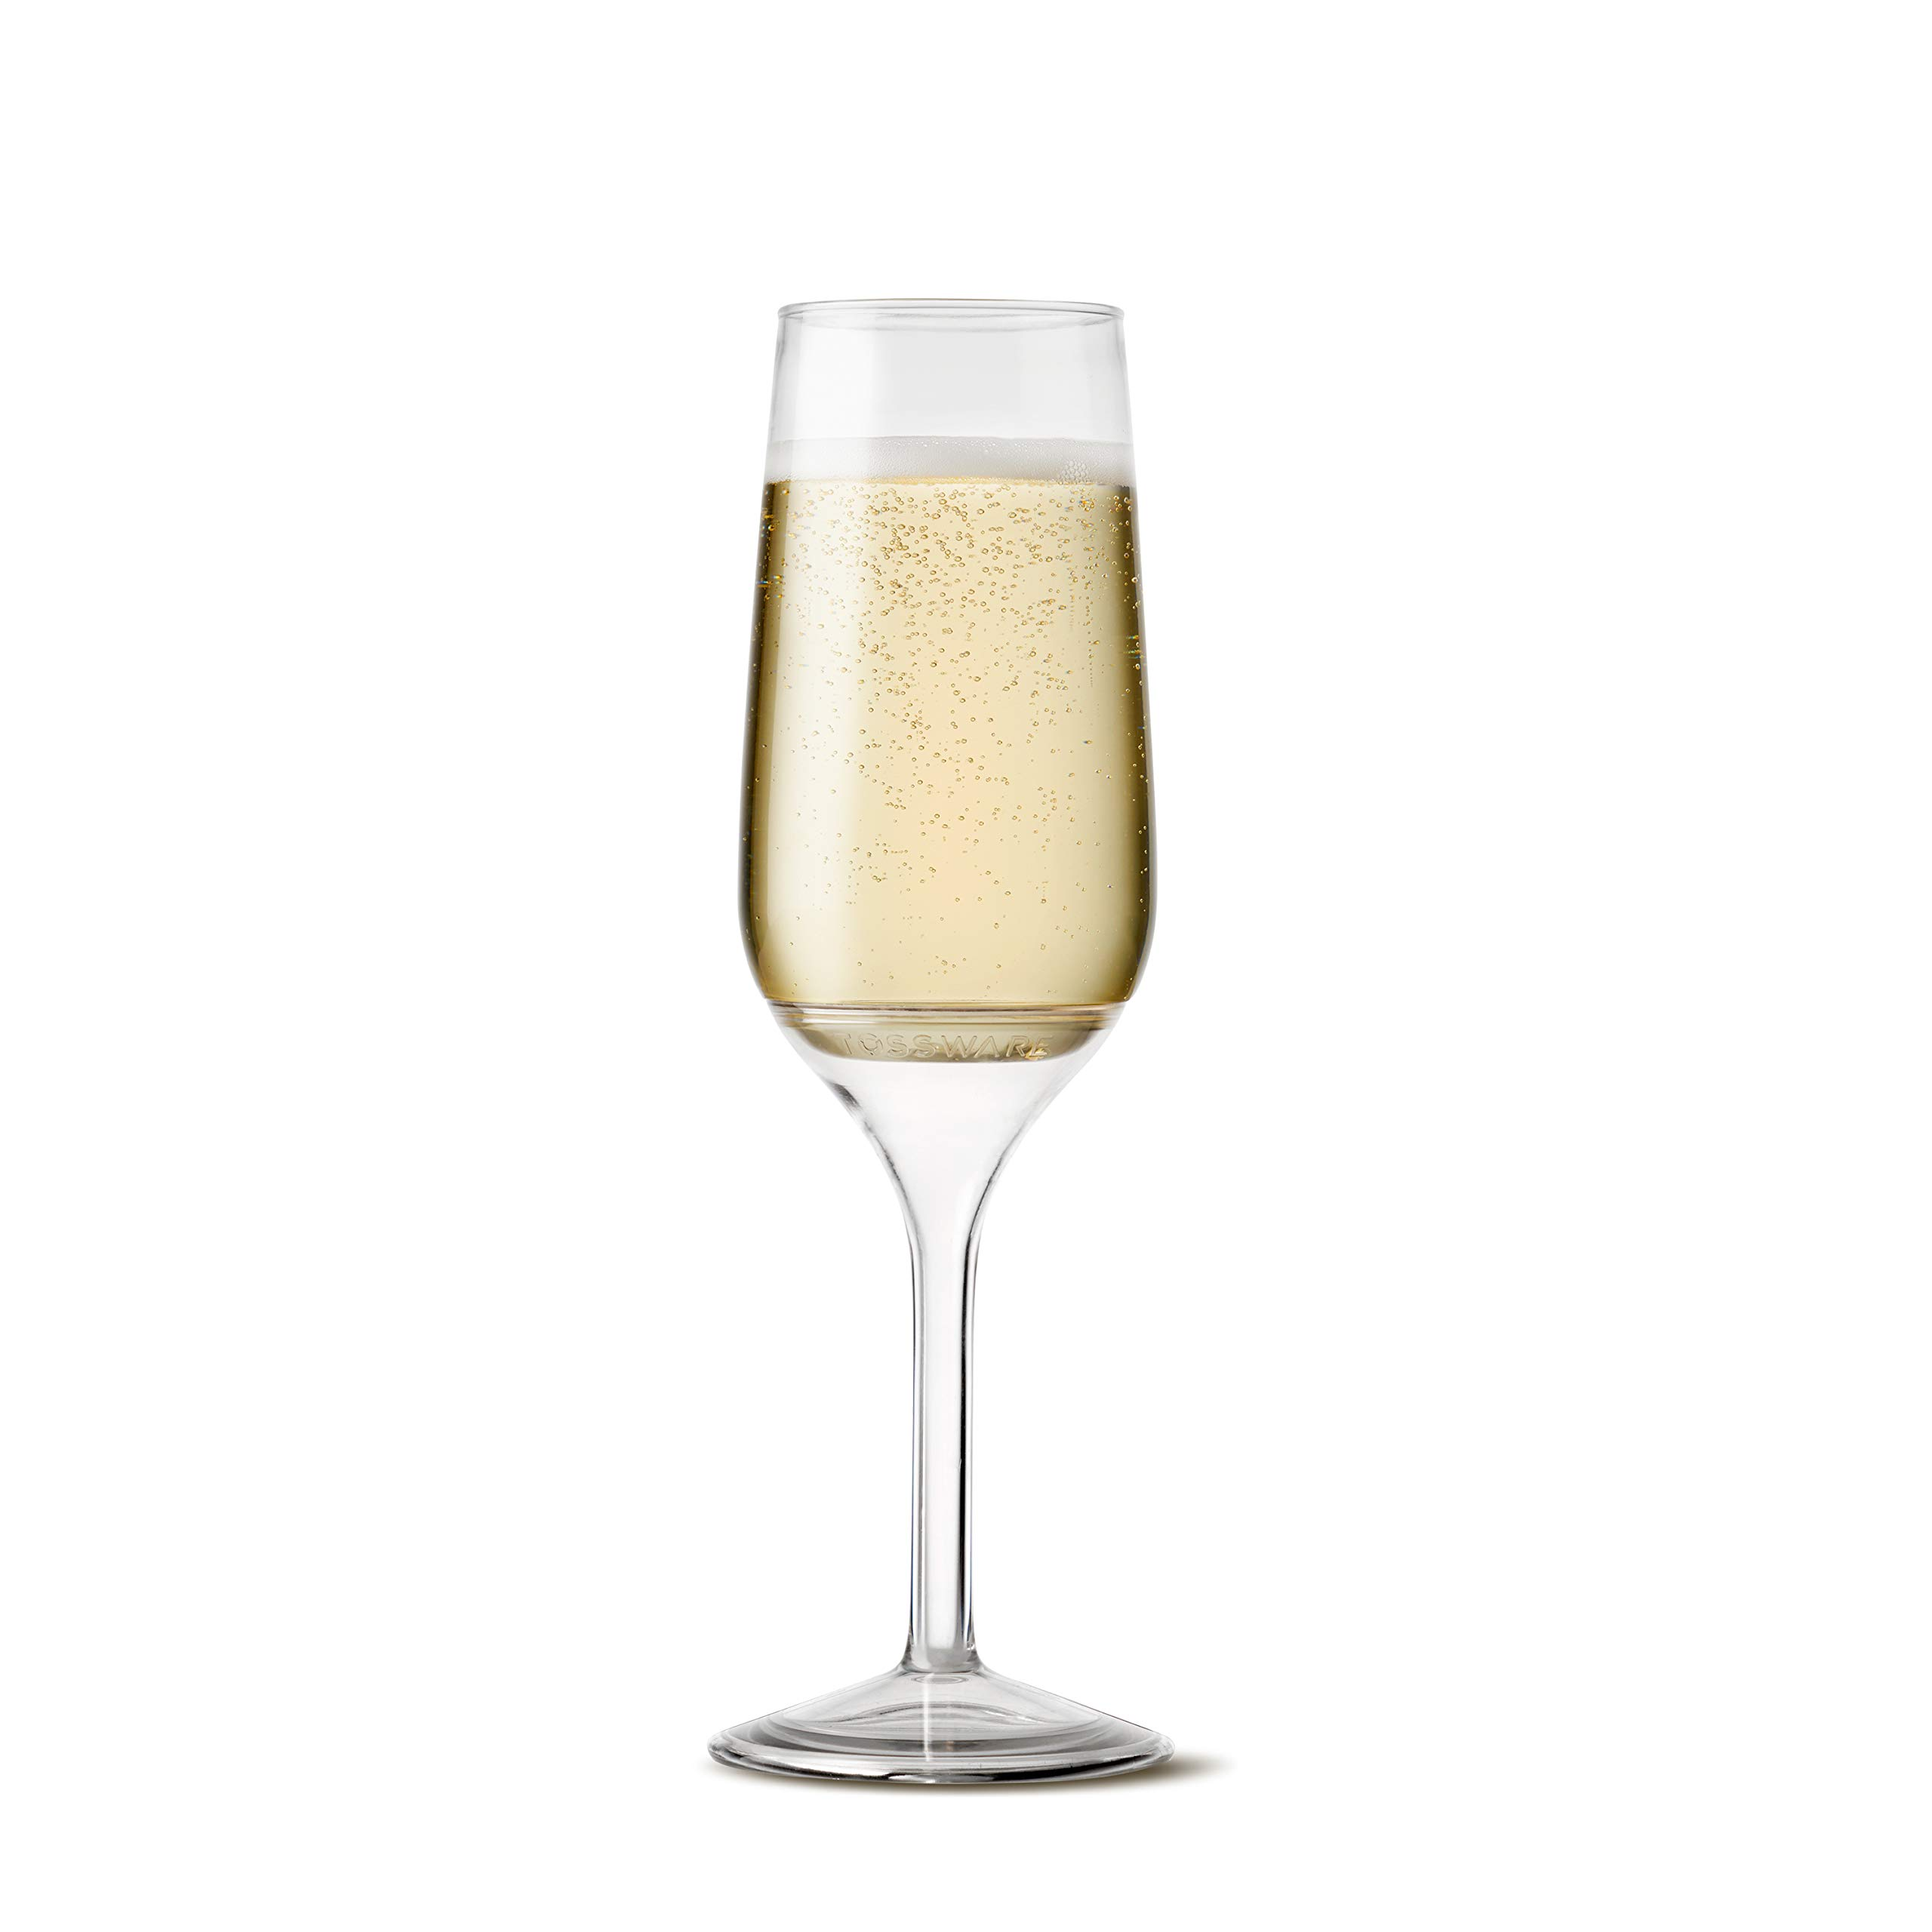 TOSSWARE 6oz Stemmed Flute - recyclable champagne plastic cup - SET OF 12 - detachable stem, shatterproof and BPA-free flute glasses by TOSSWARE